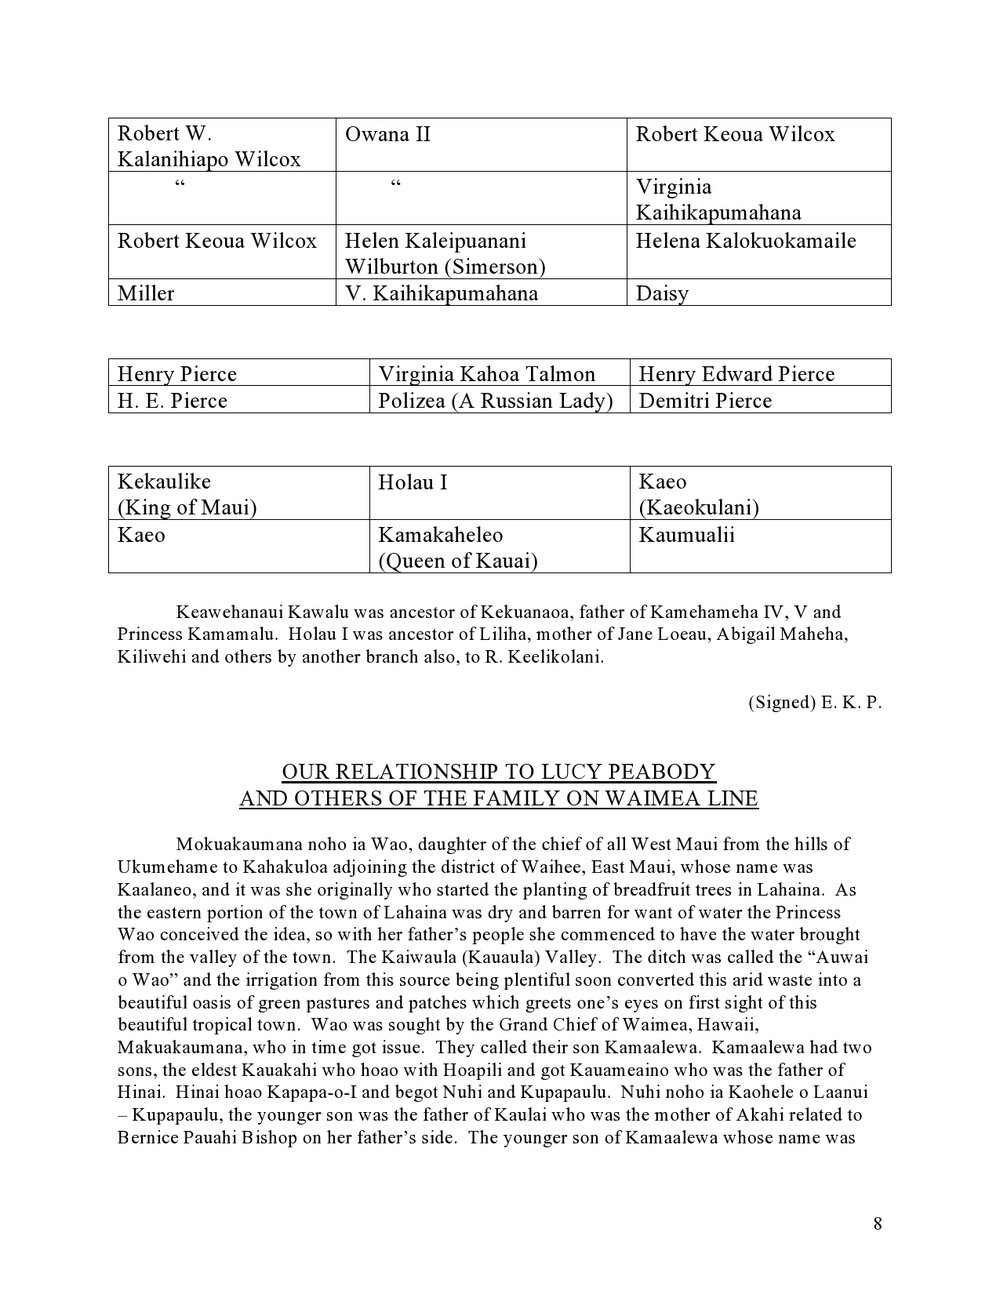 Genealogical Table of the Keoua Family-page0008.jpg